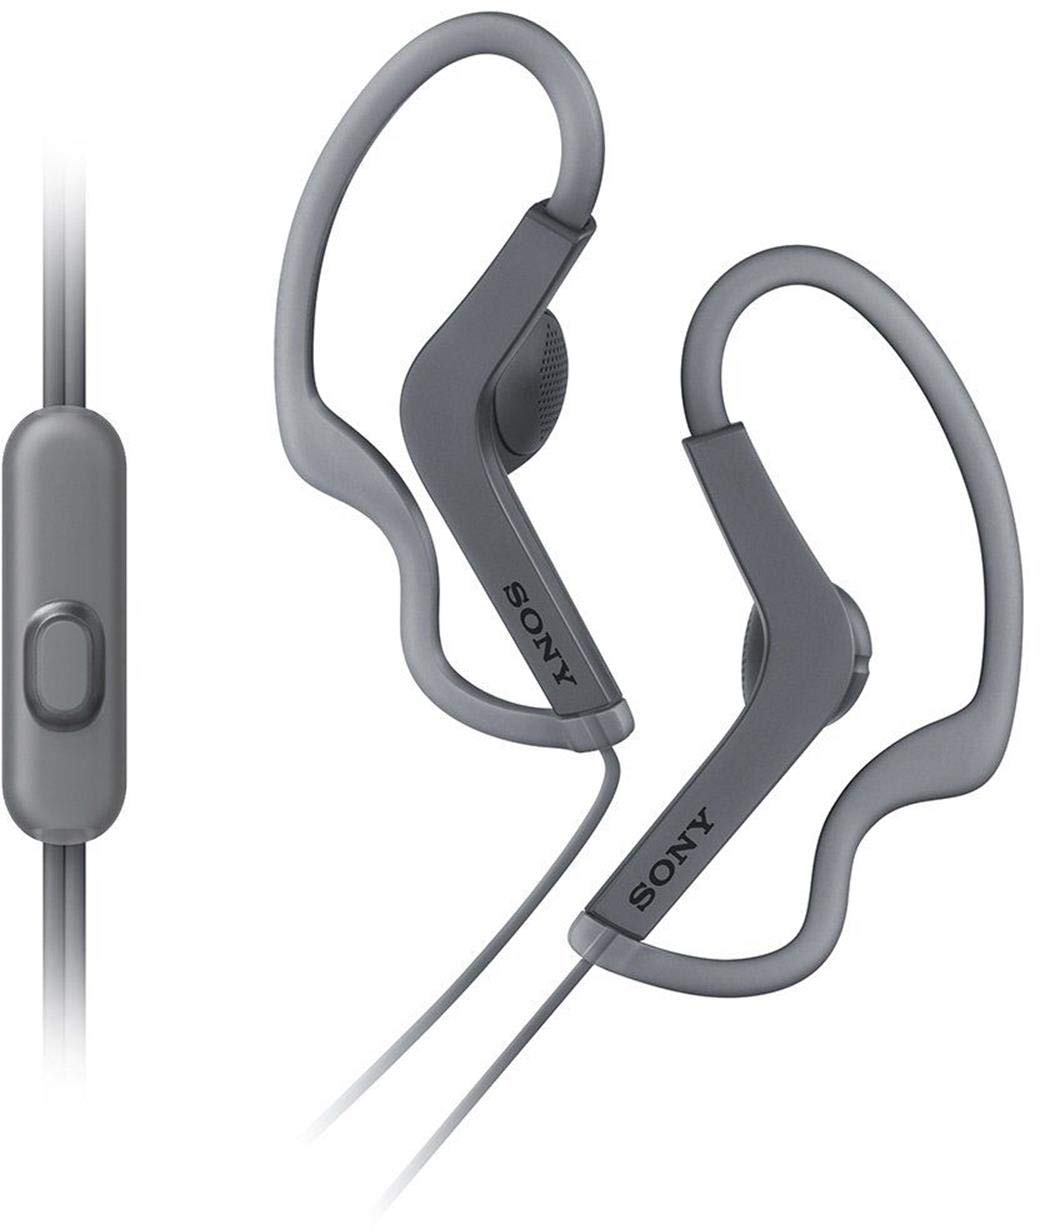 Sony MDR-AS210AP Open-Ear Active Sports Headphones